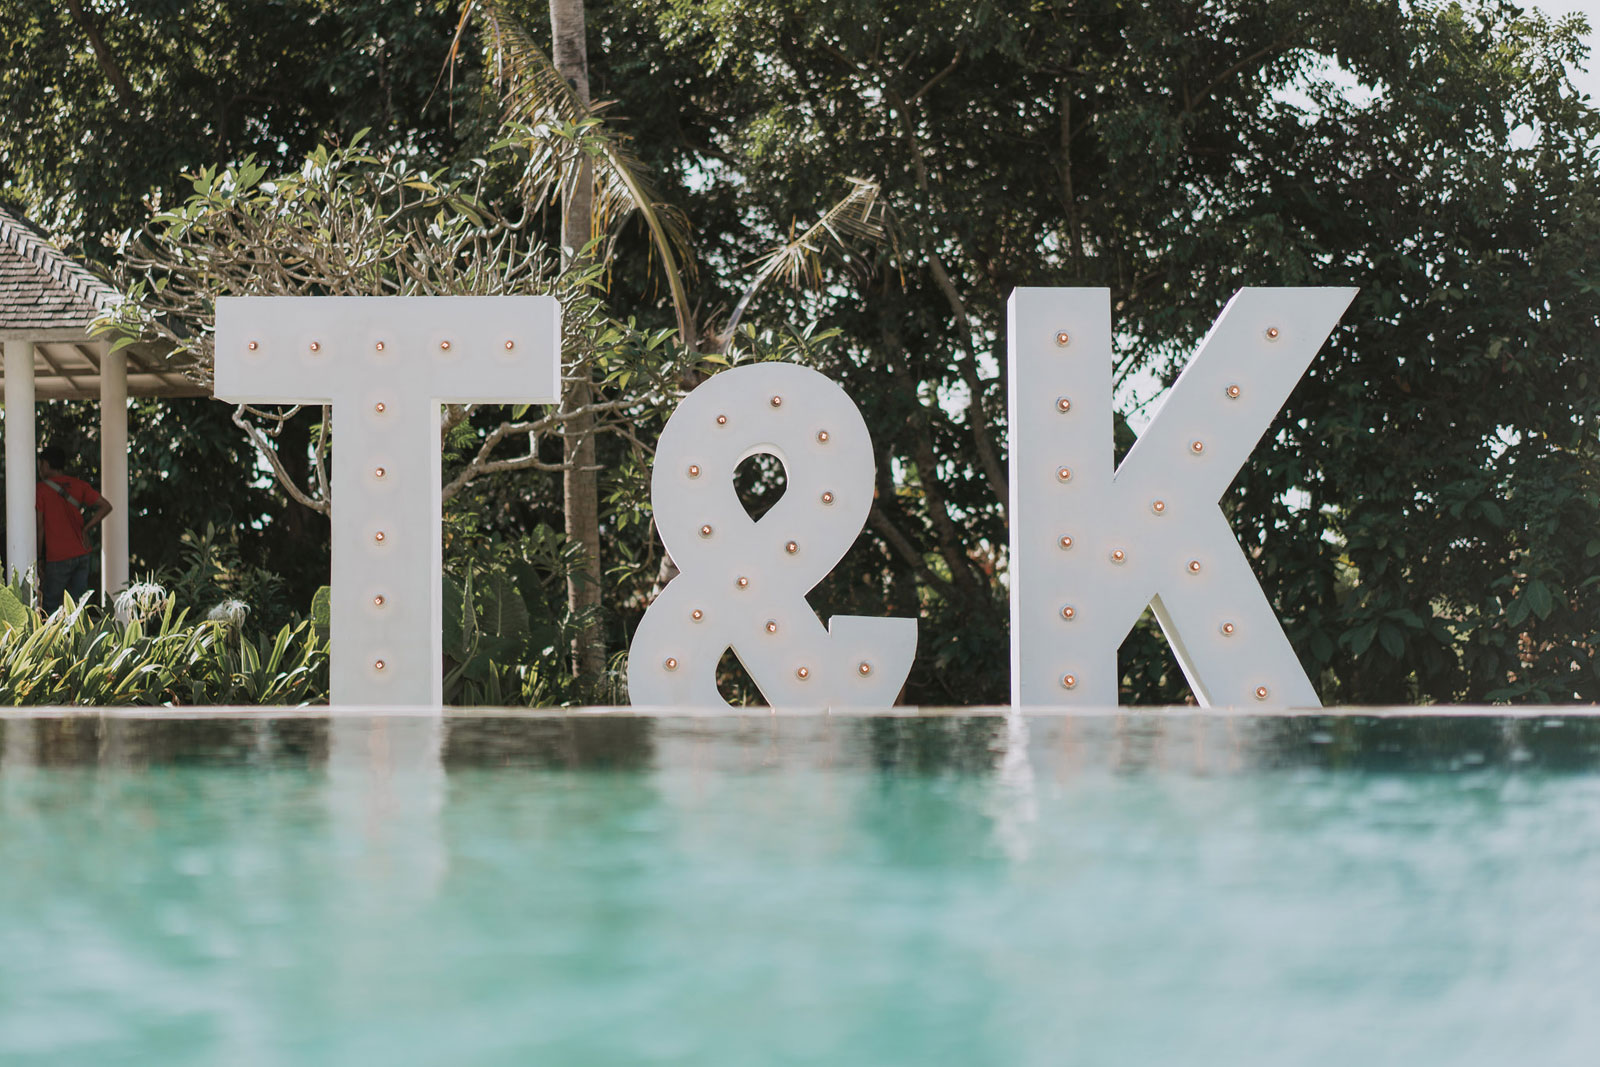 newfound-t-k-canggu-bali-ubud-wedding-photographer-296